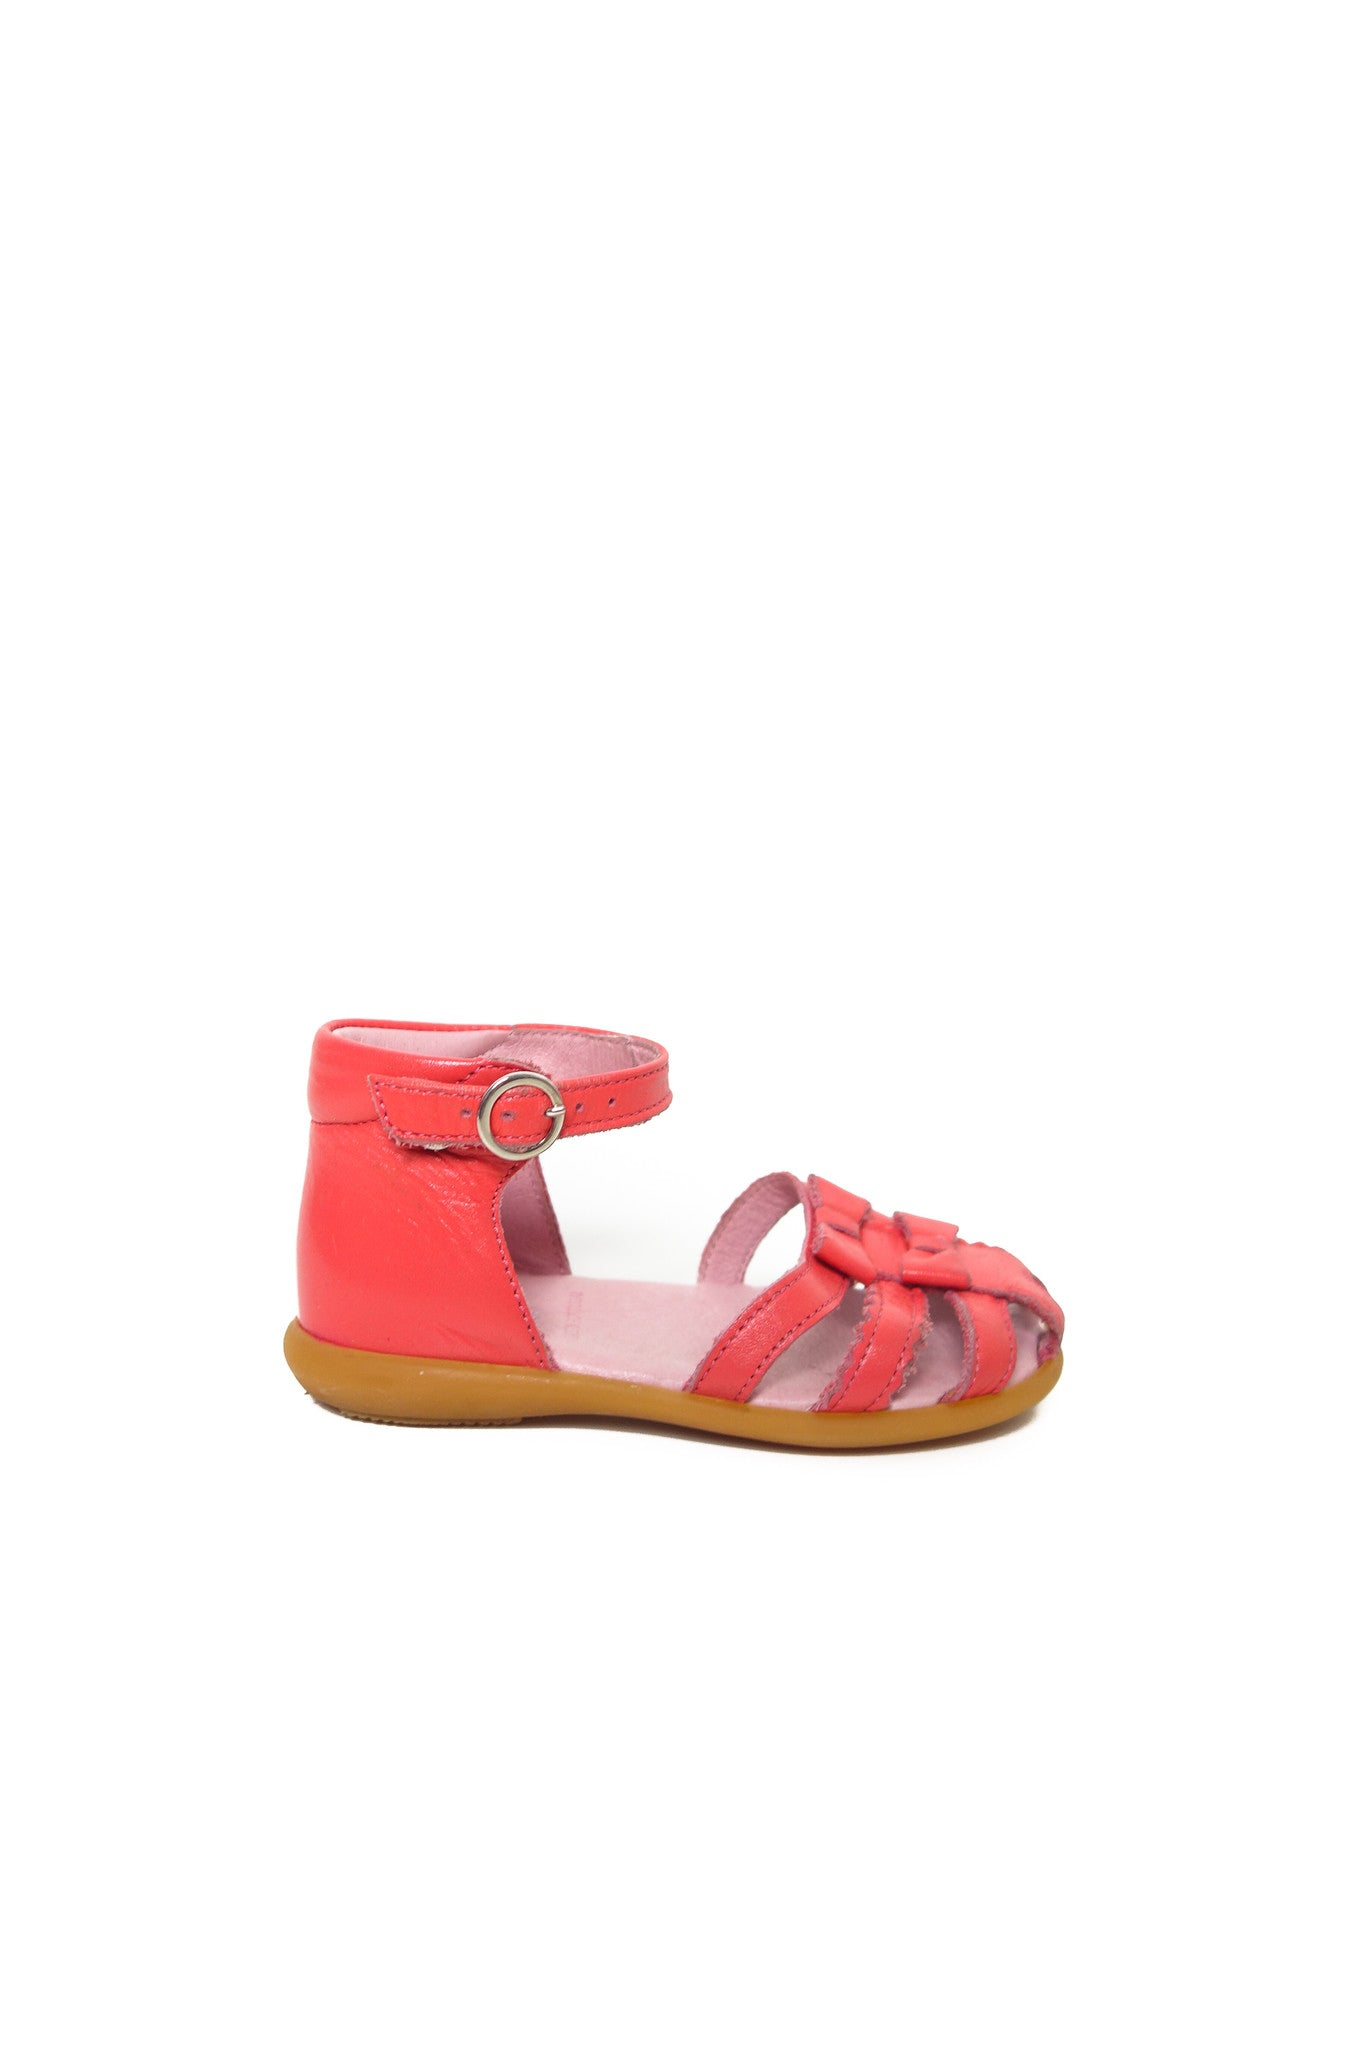 10002803 Jacadi Kids~Sandals 3T (EU 24) at Retykle